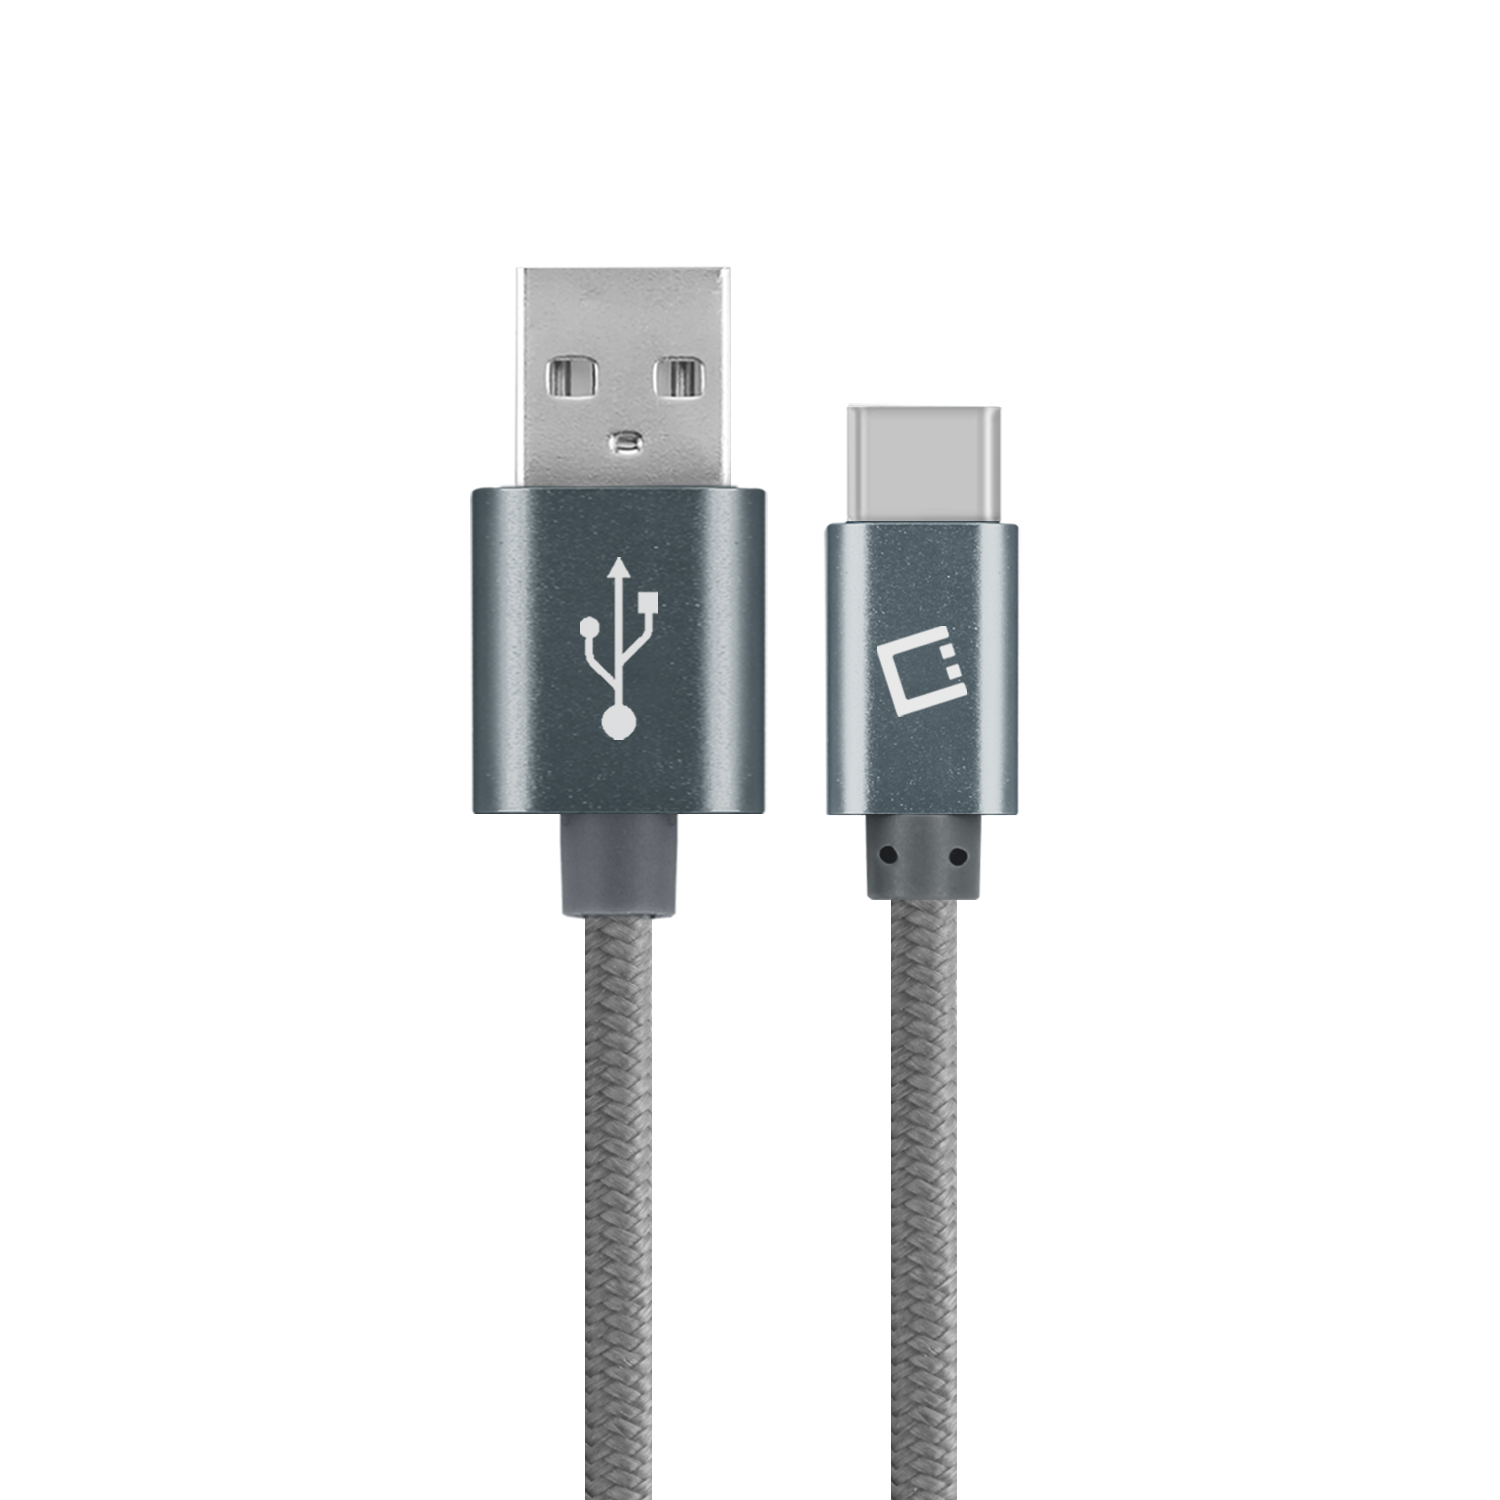 ZTE Axon M USB Type-C To Type-A Braided Data Power Cable Grey 10ft Braided